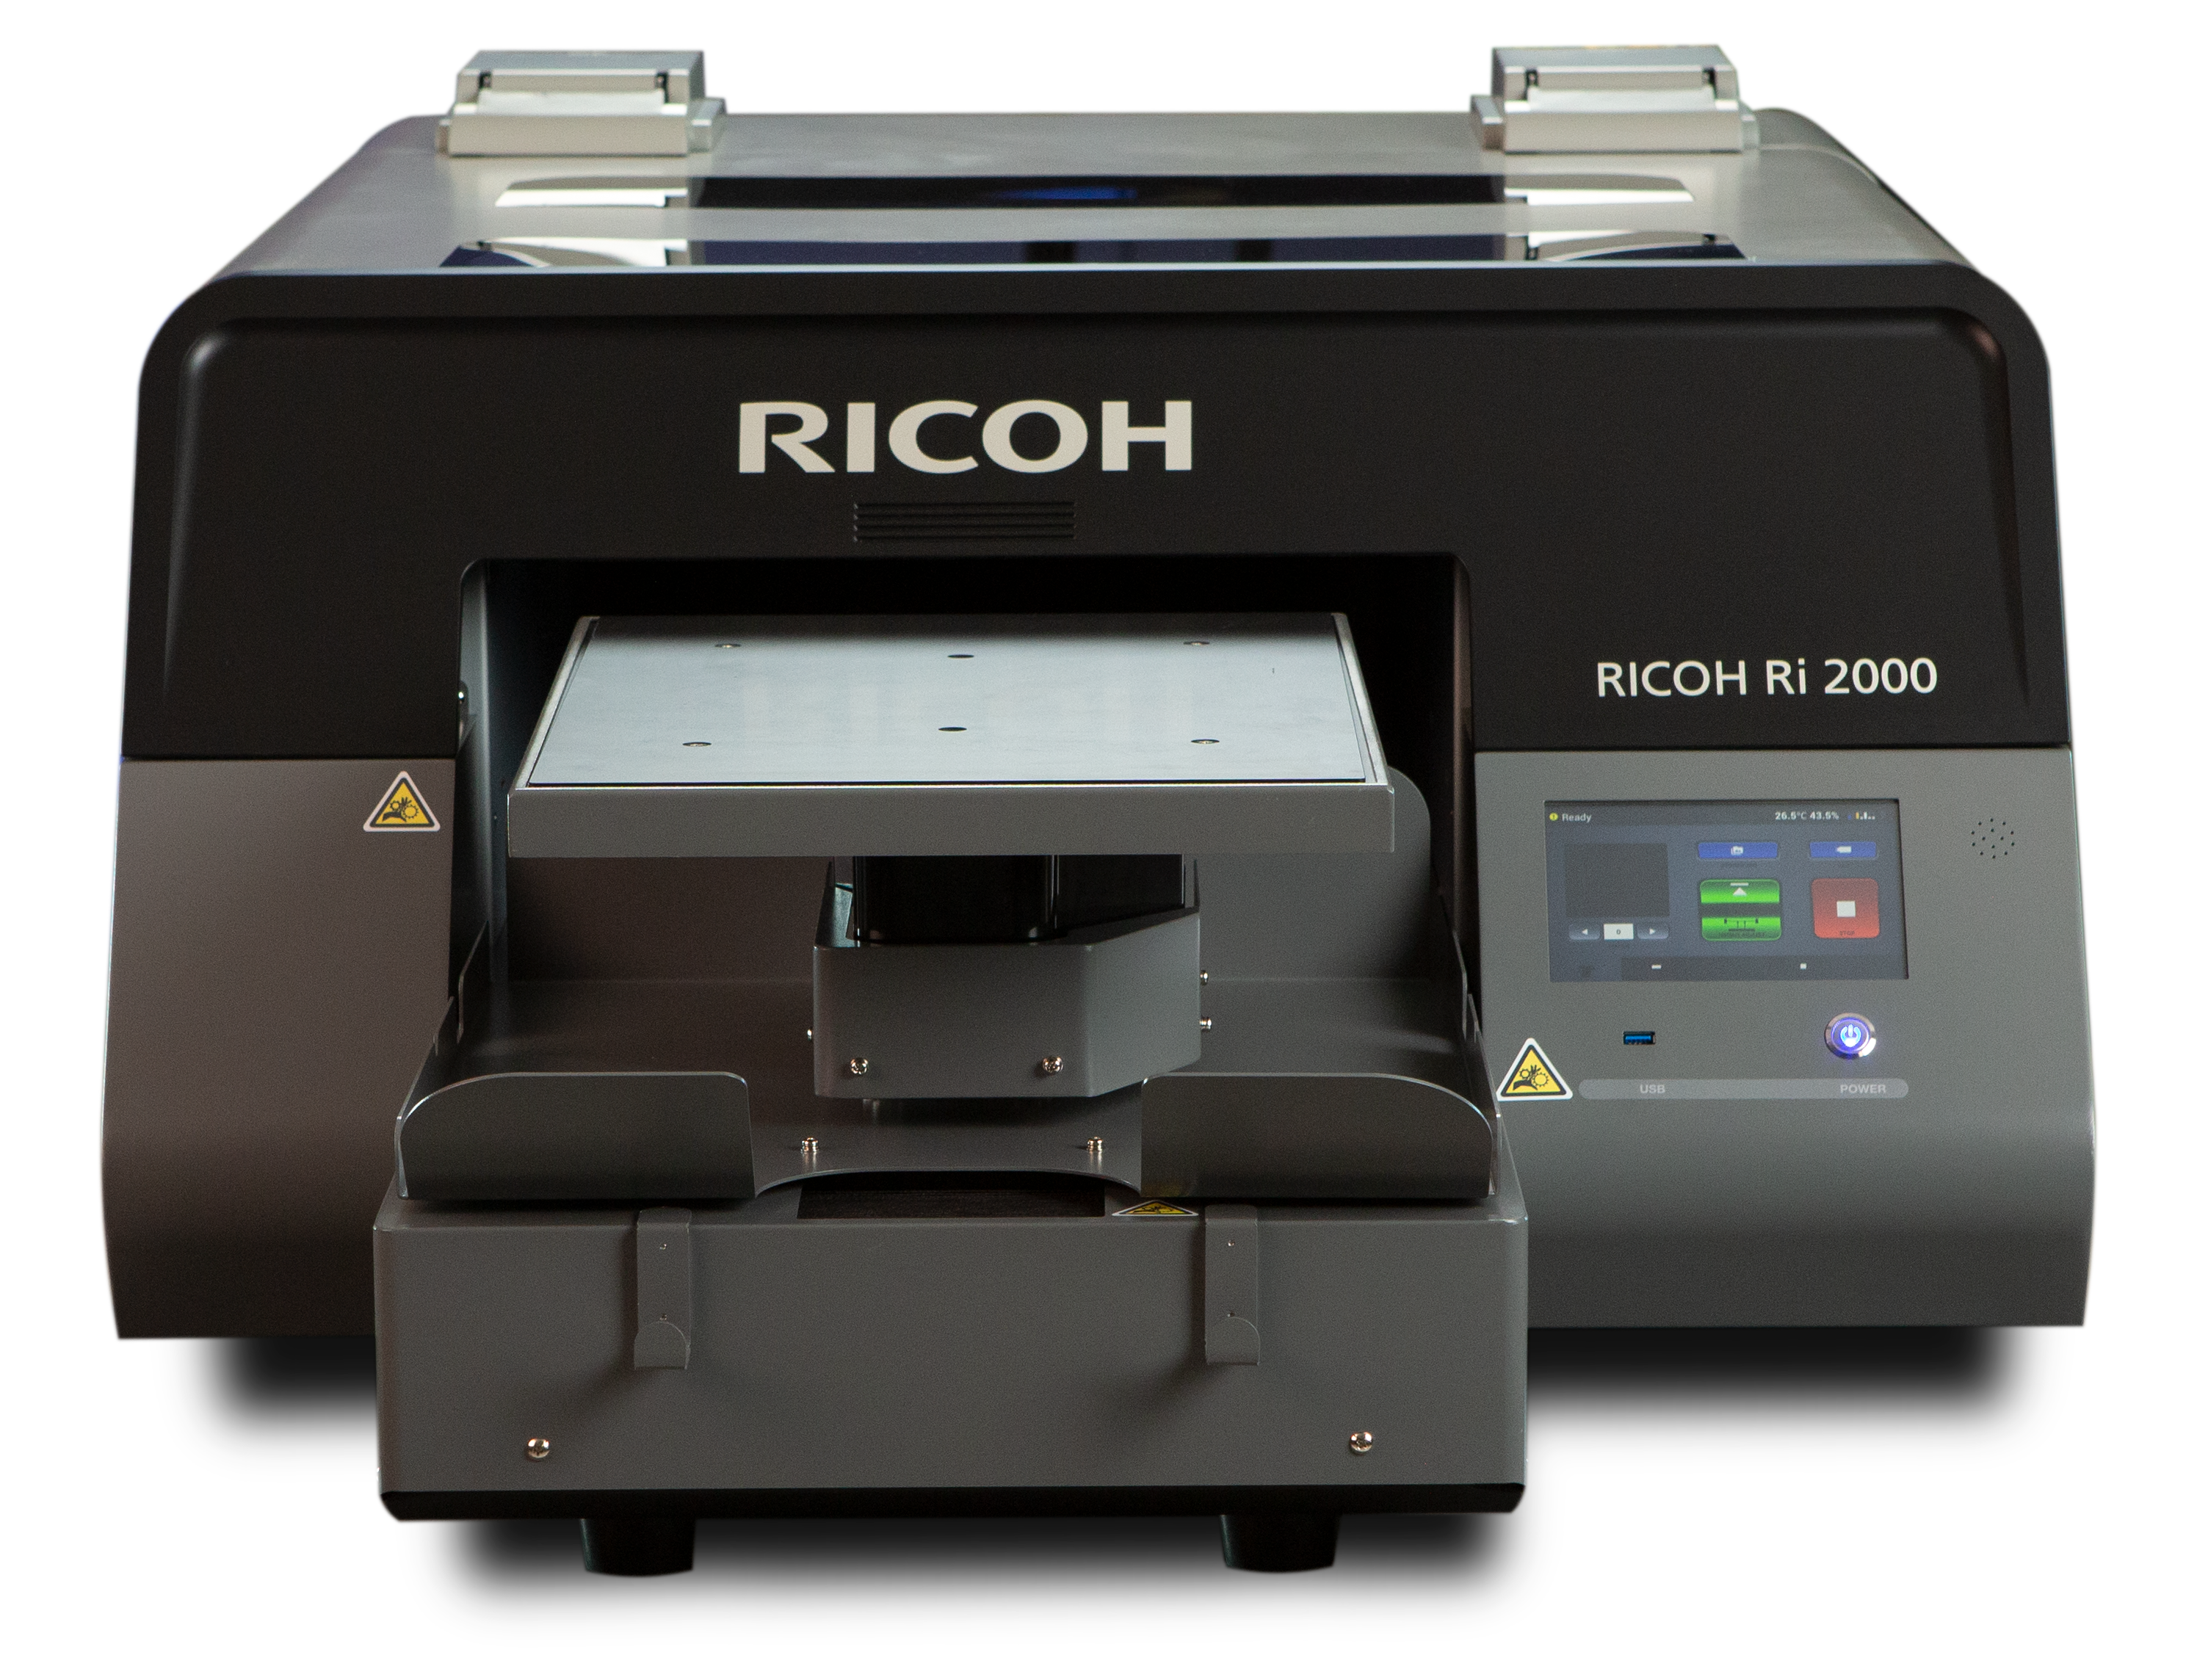 Ricoh next generation Direct to Garment technology offers productivity breakthrough